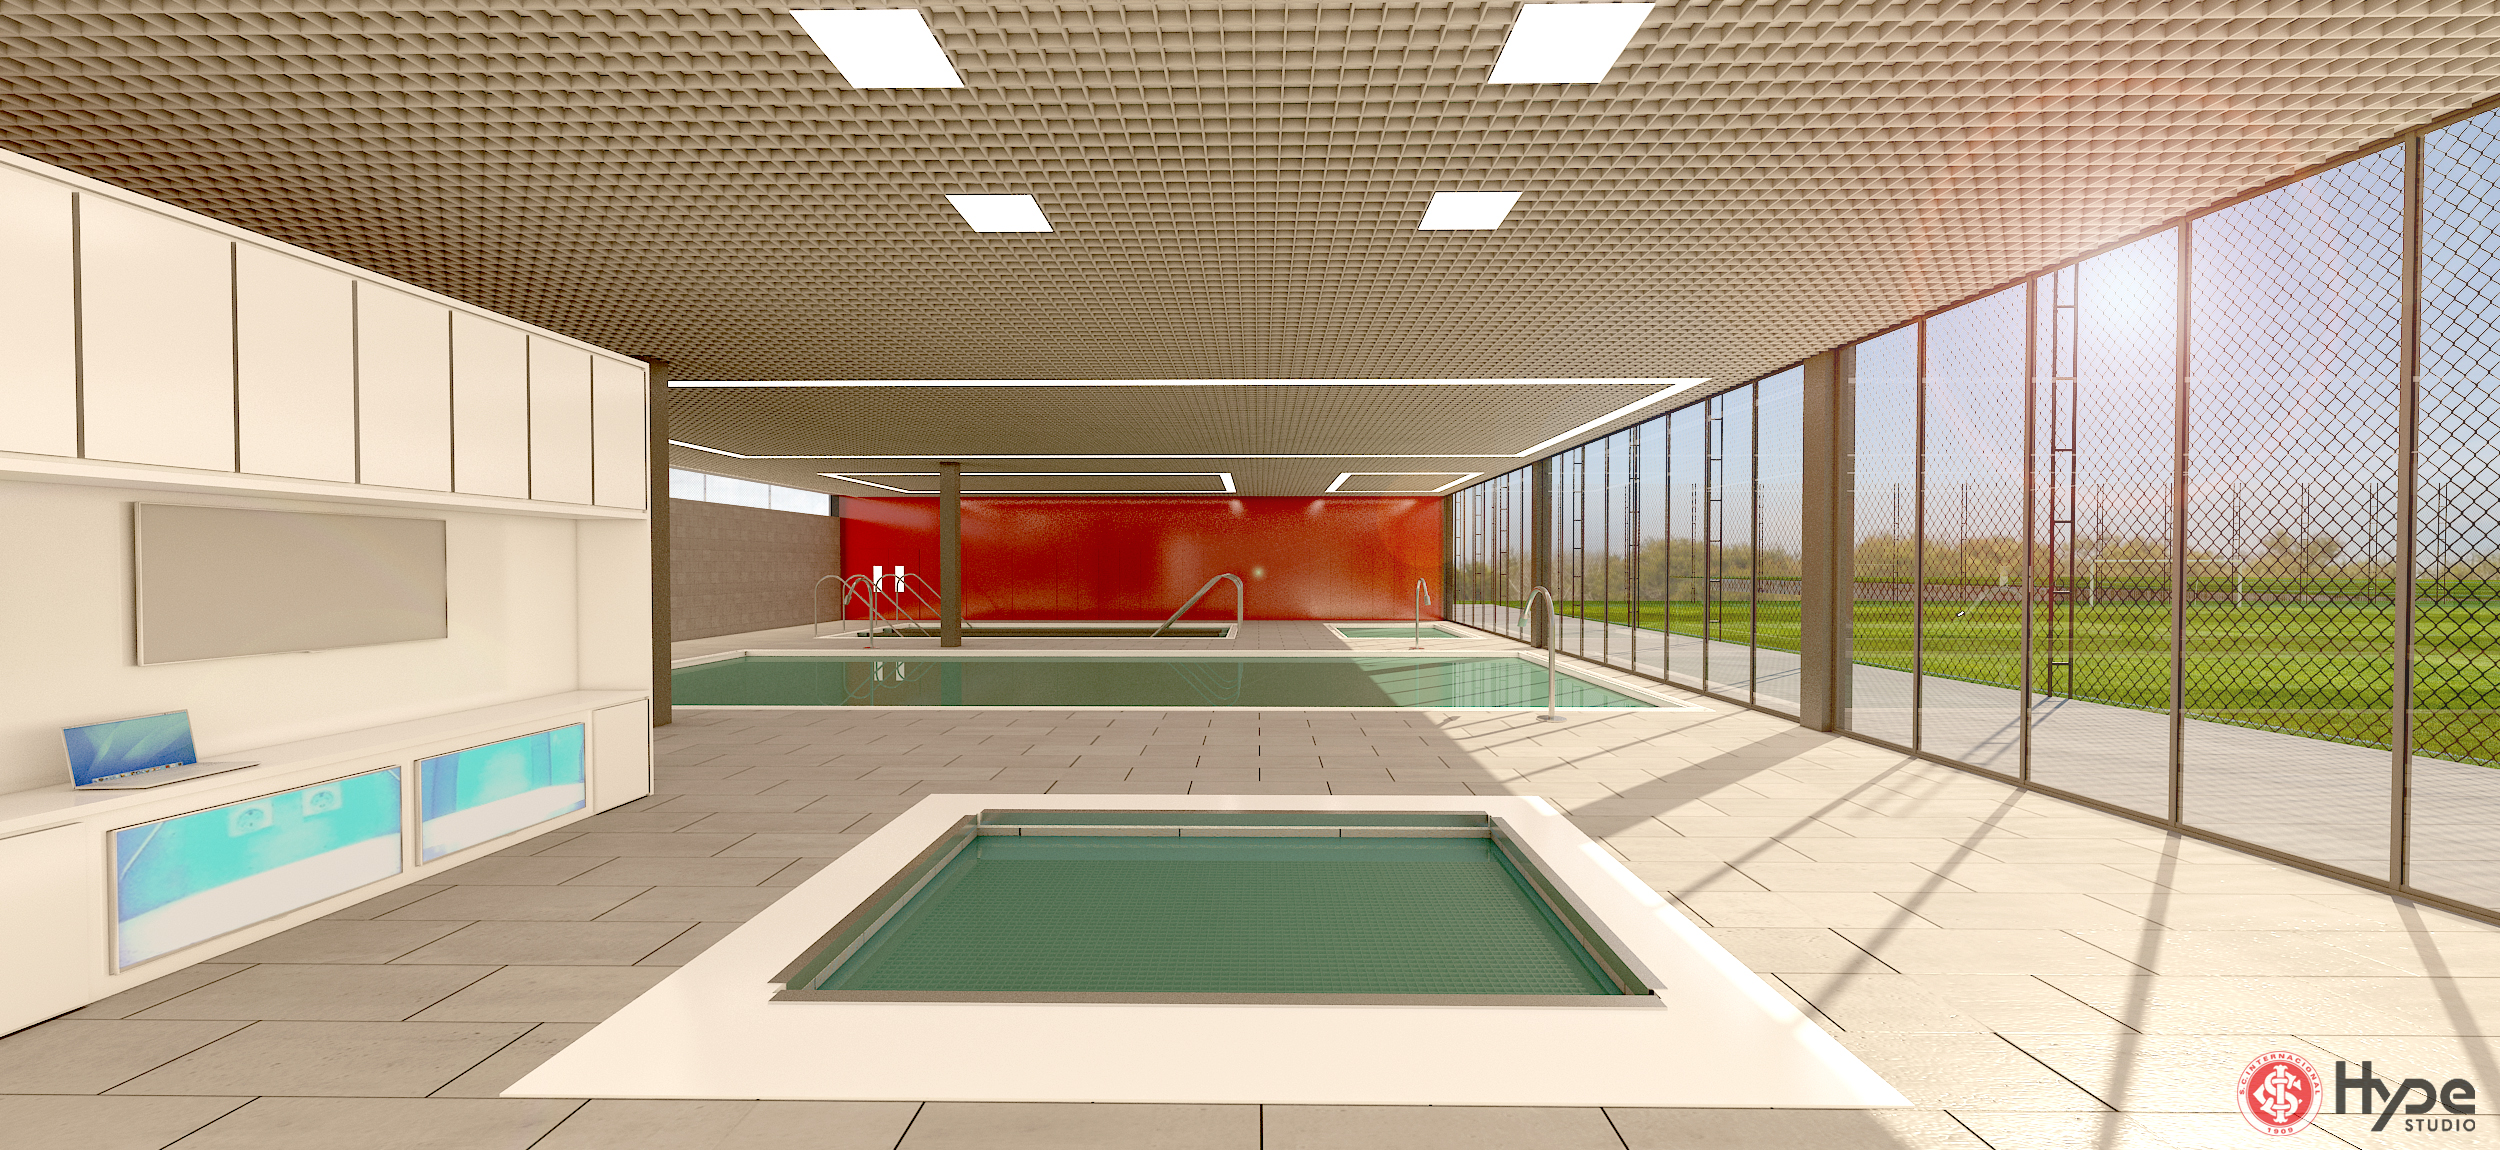 SCI Training Center - Pool